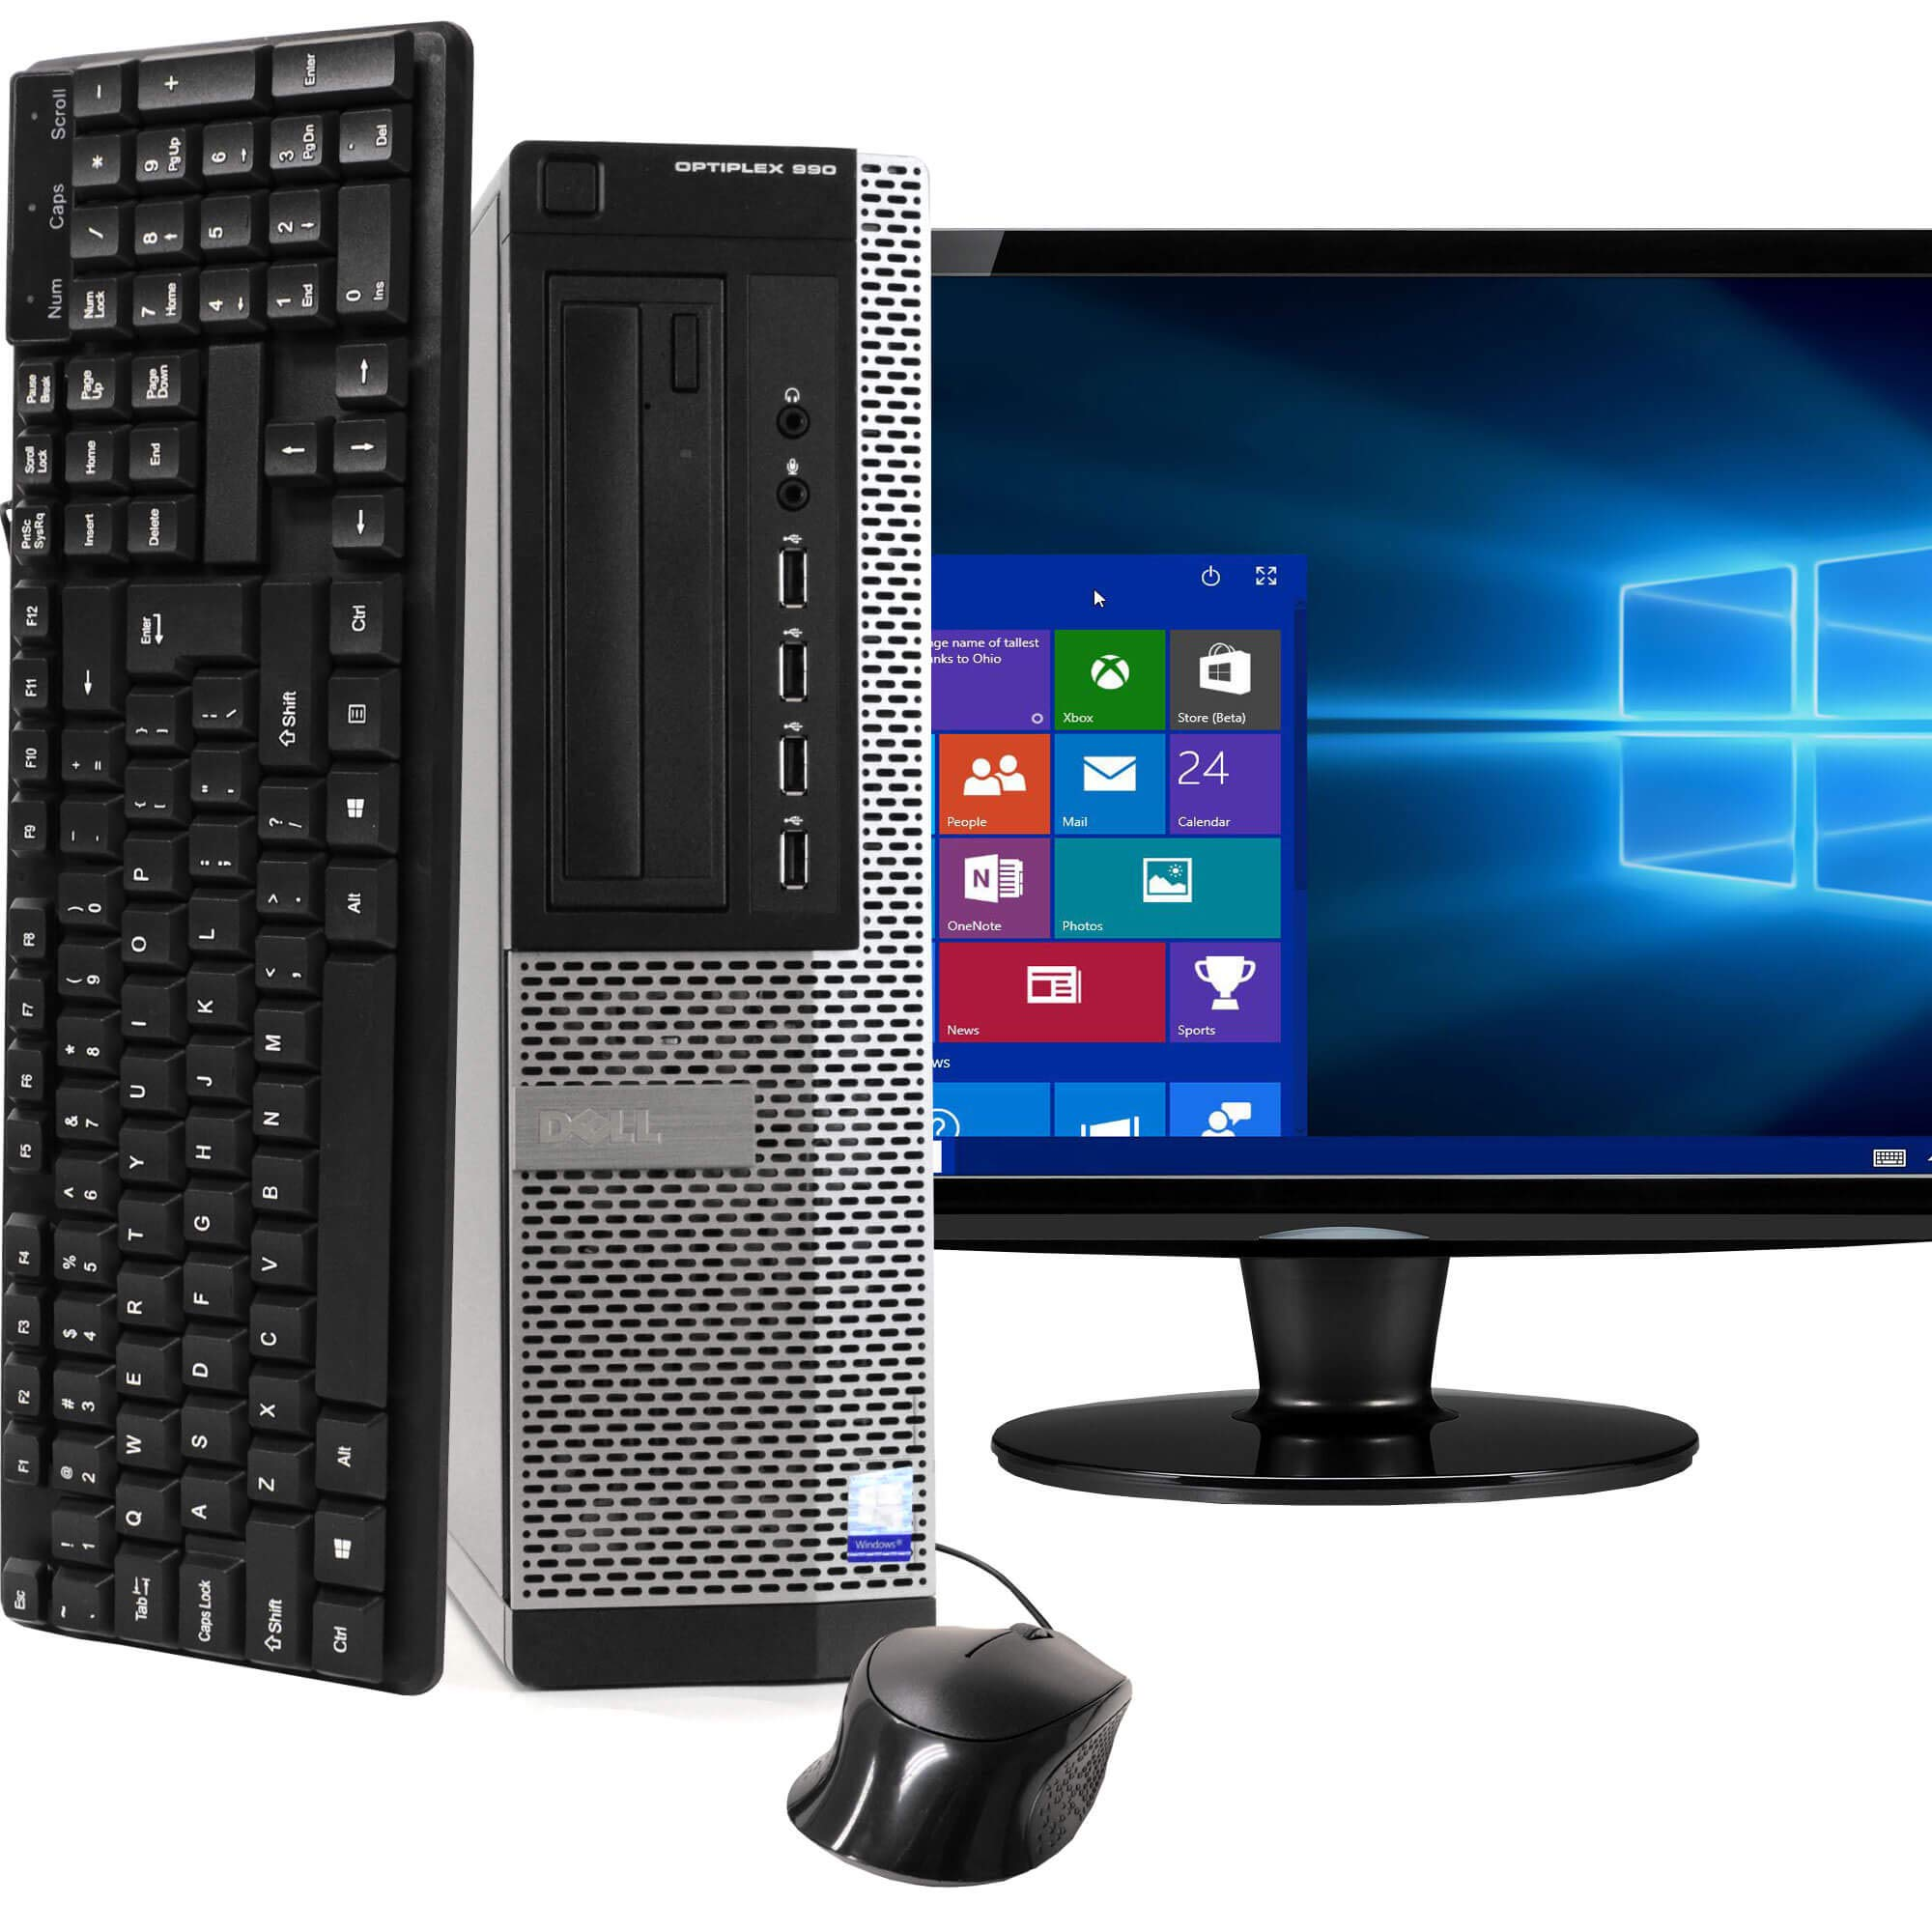 Dell Optiplex 990 SFF PC, Intel Core i5 Processor, 16GB RAM, 2TB HDD, DVDRW, Keyboard & Mouse, Wi-Fi, Bluetooth 4.0, Windows 10 Home, 20in LCD Monitor (Renewed)